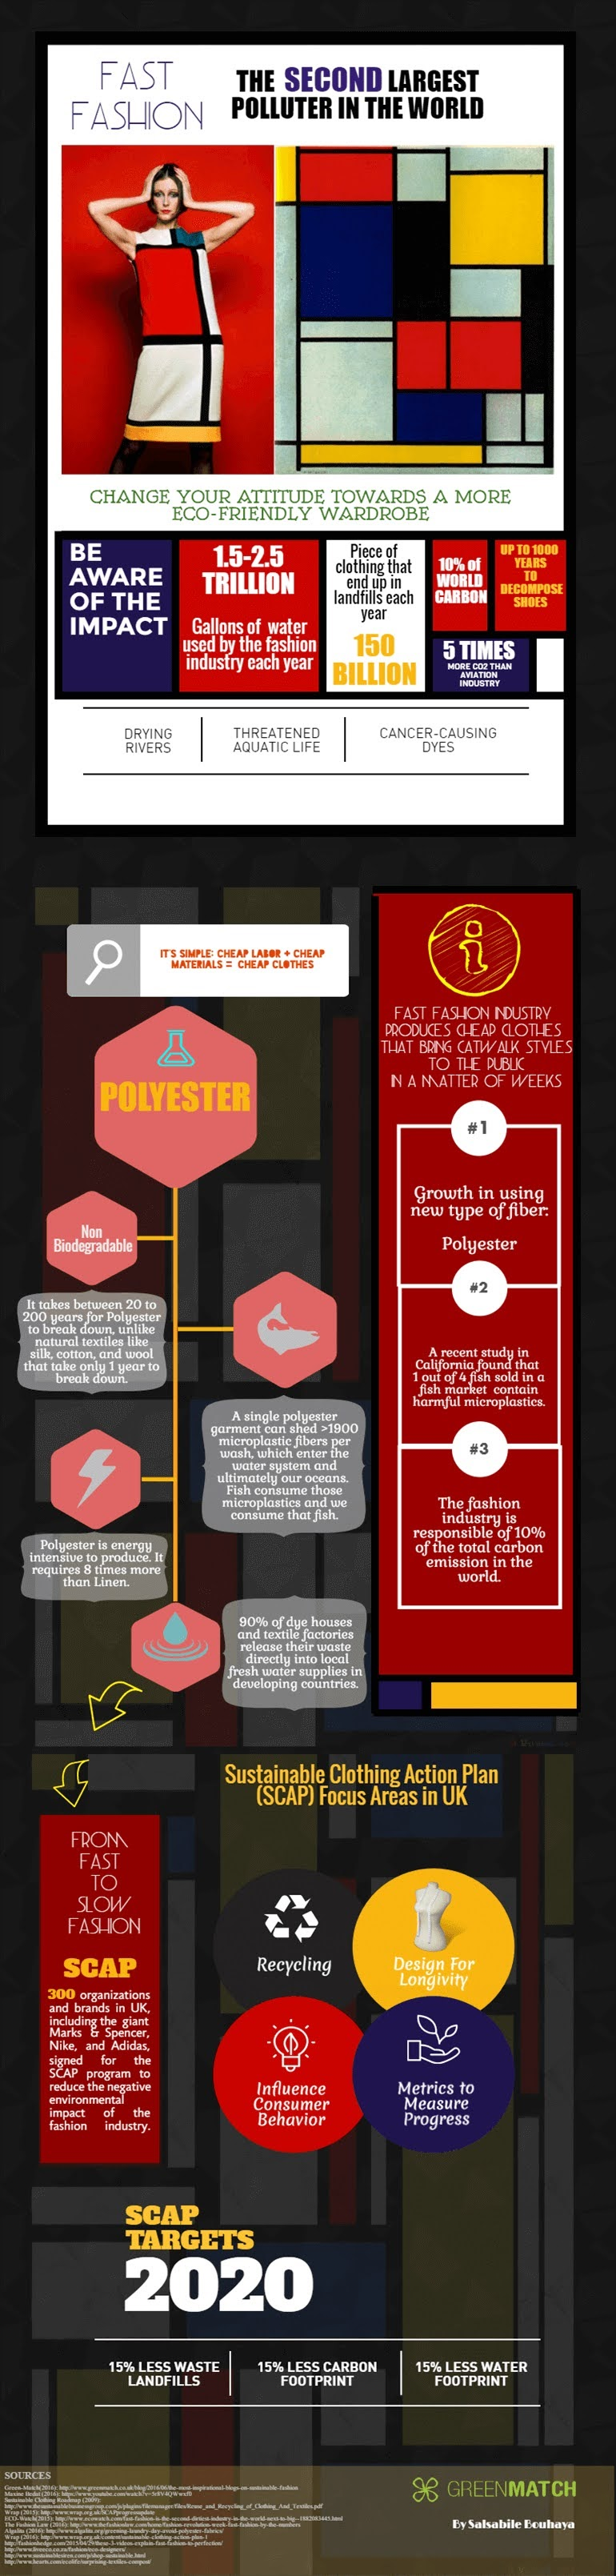 fast-fashion-the-second-largest-polluter-in-the-world-infographic